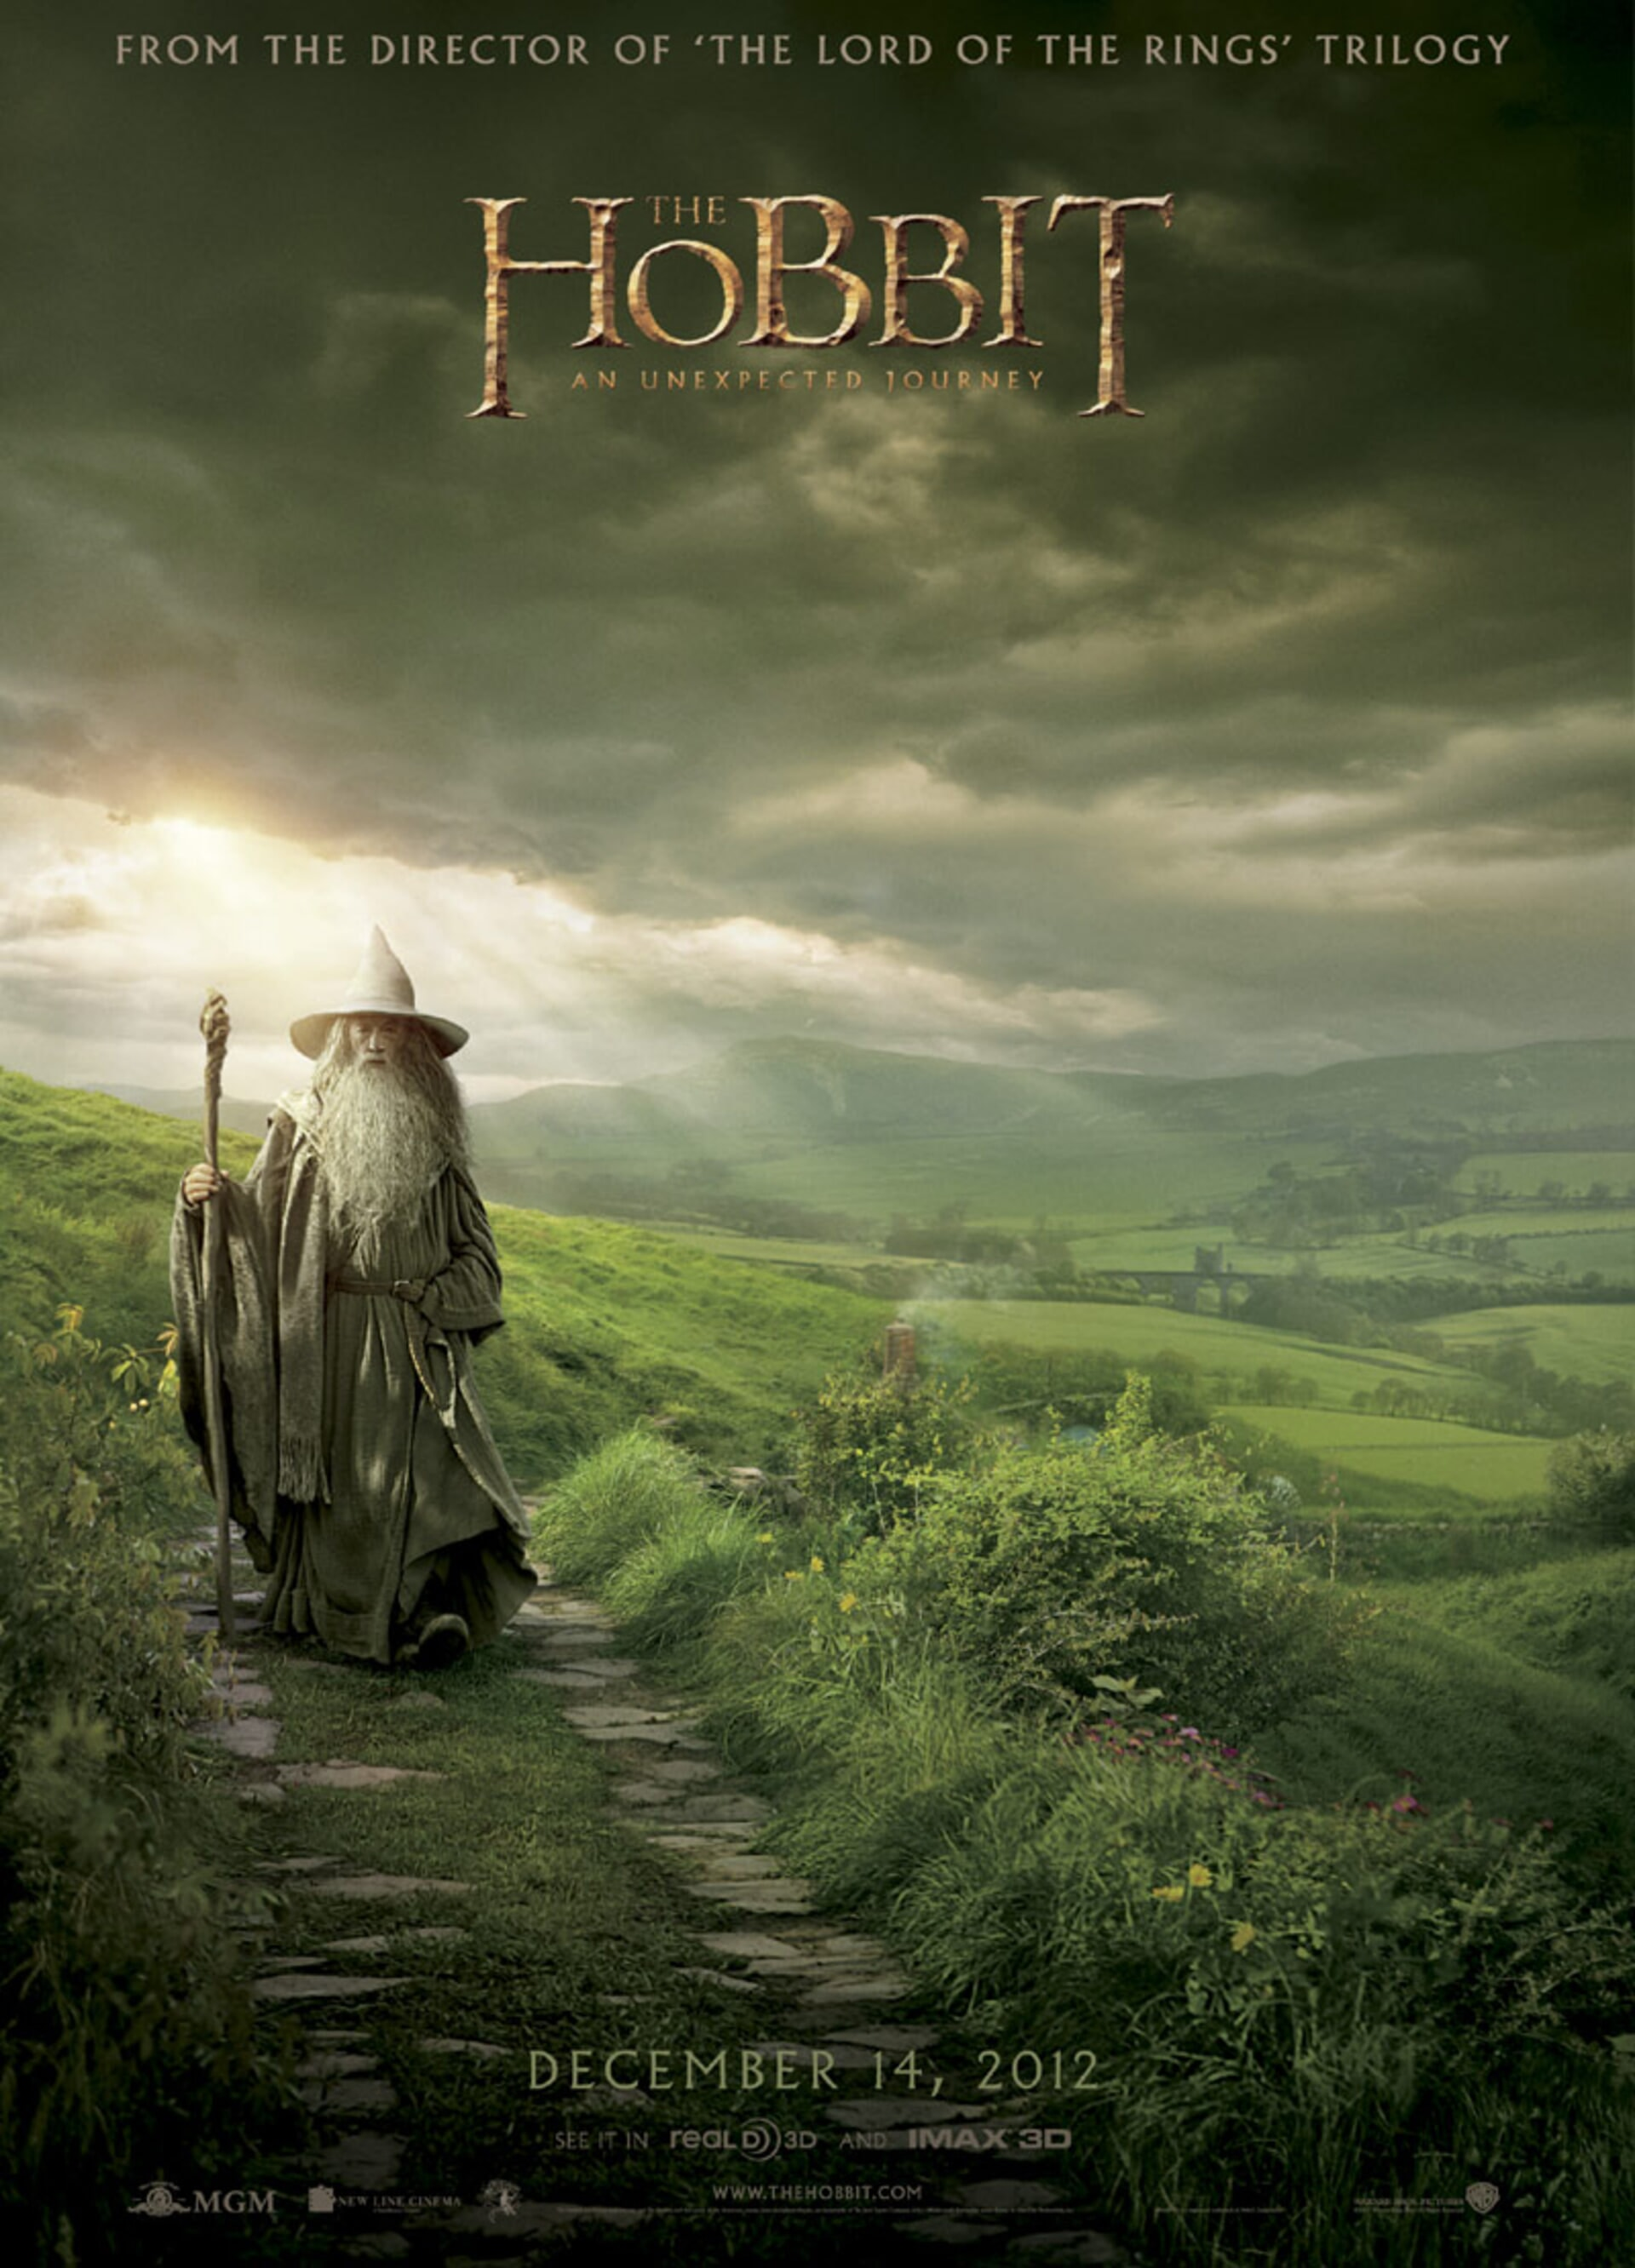 The Hobbit: An Unexpected Journey - Poster 1